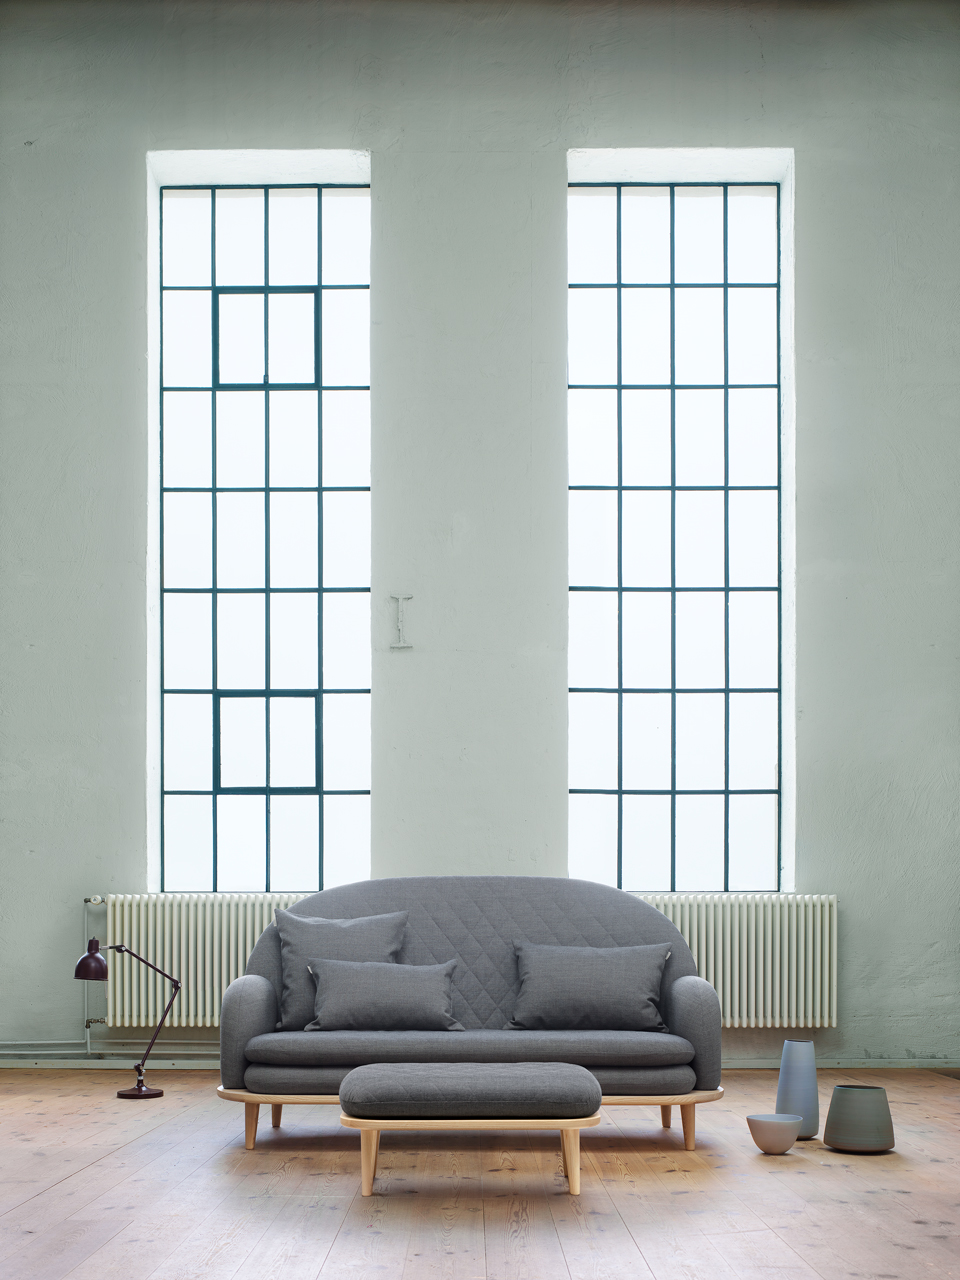 Rise-Sofa-Fogia-Note-Design-Studio-5-grey